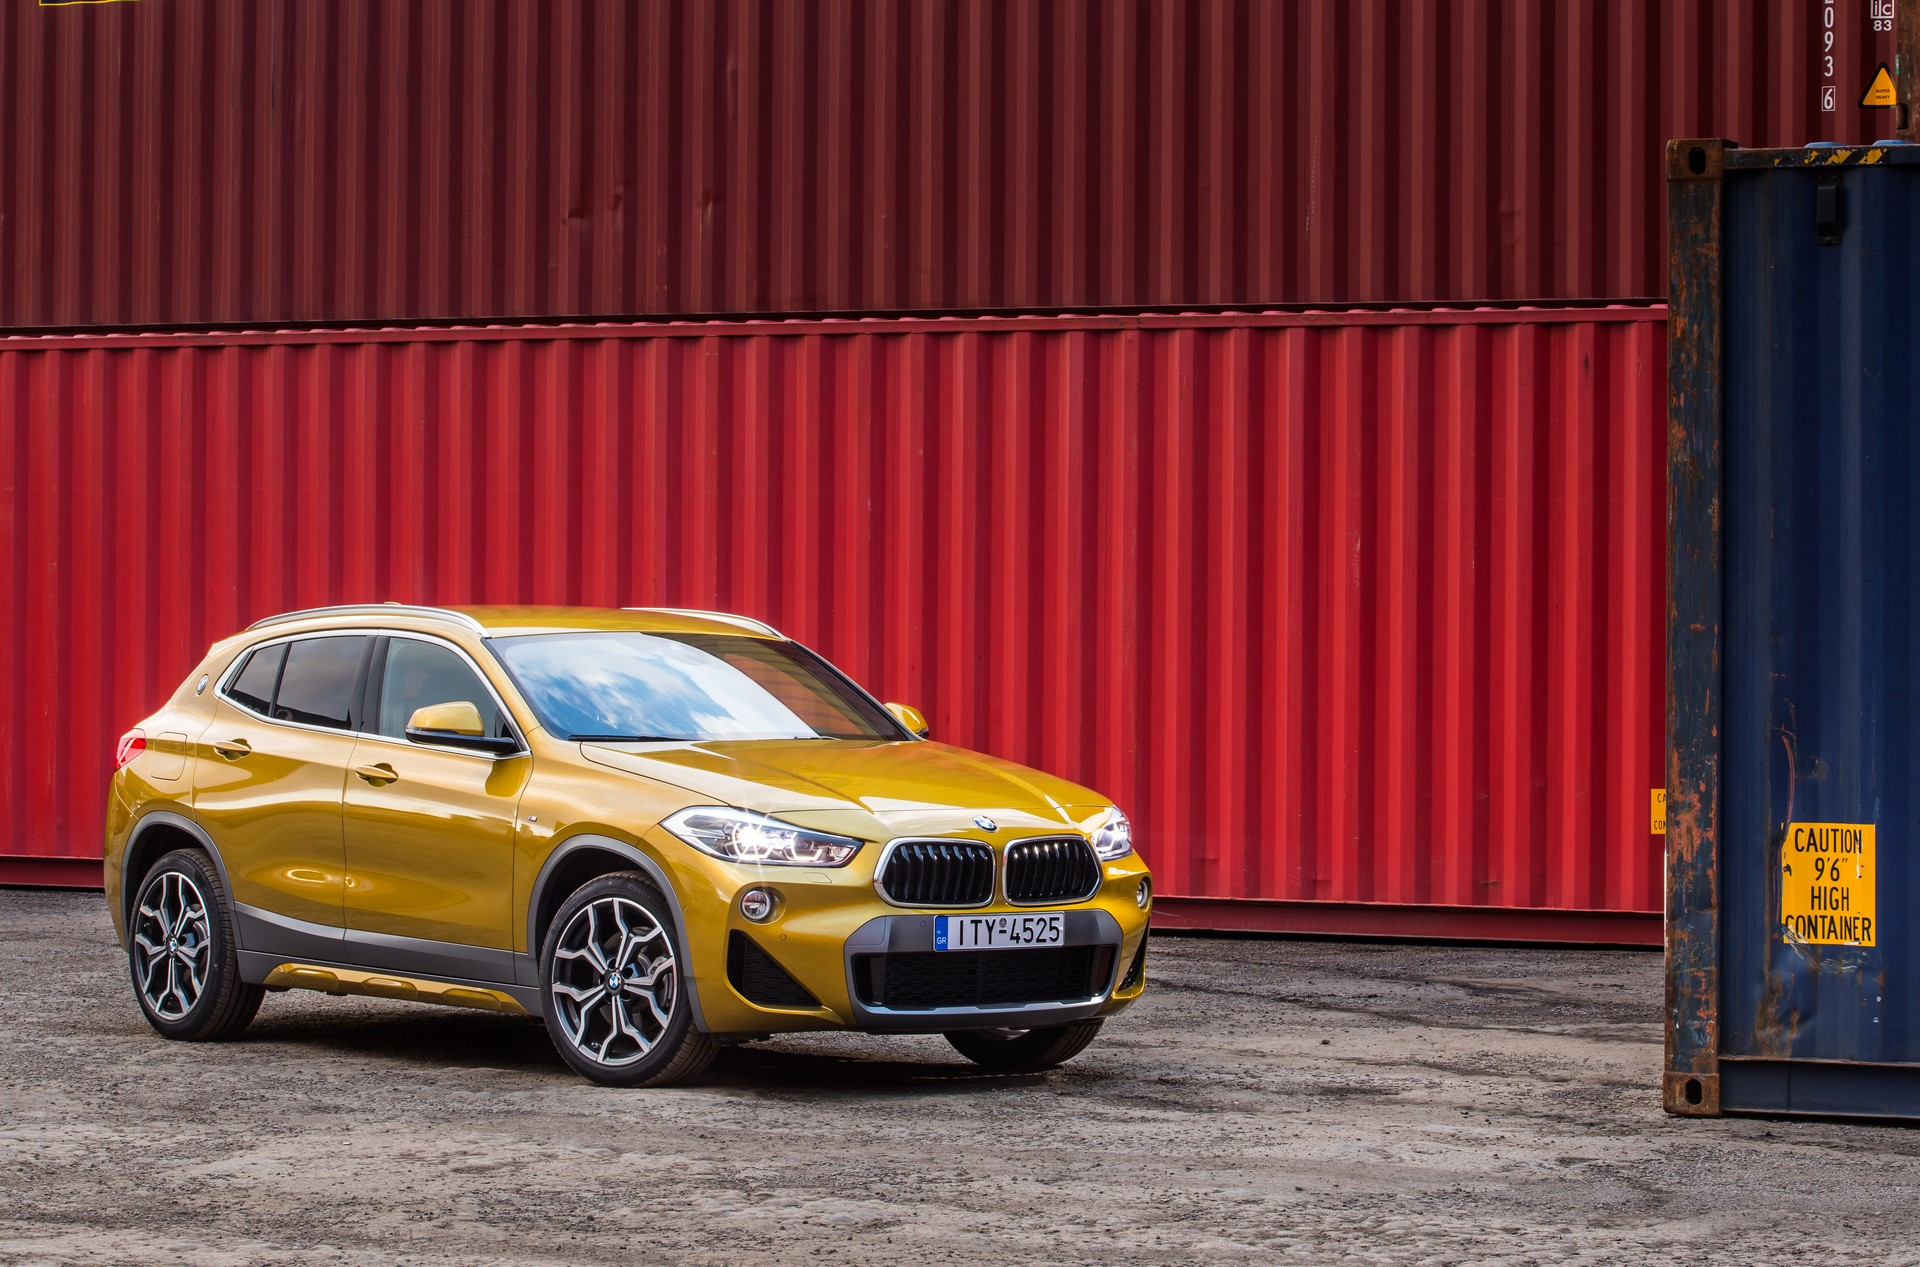 BMW X2 Greek 2018 (15)